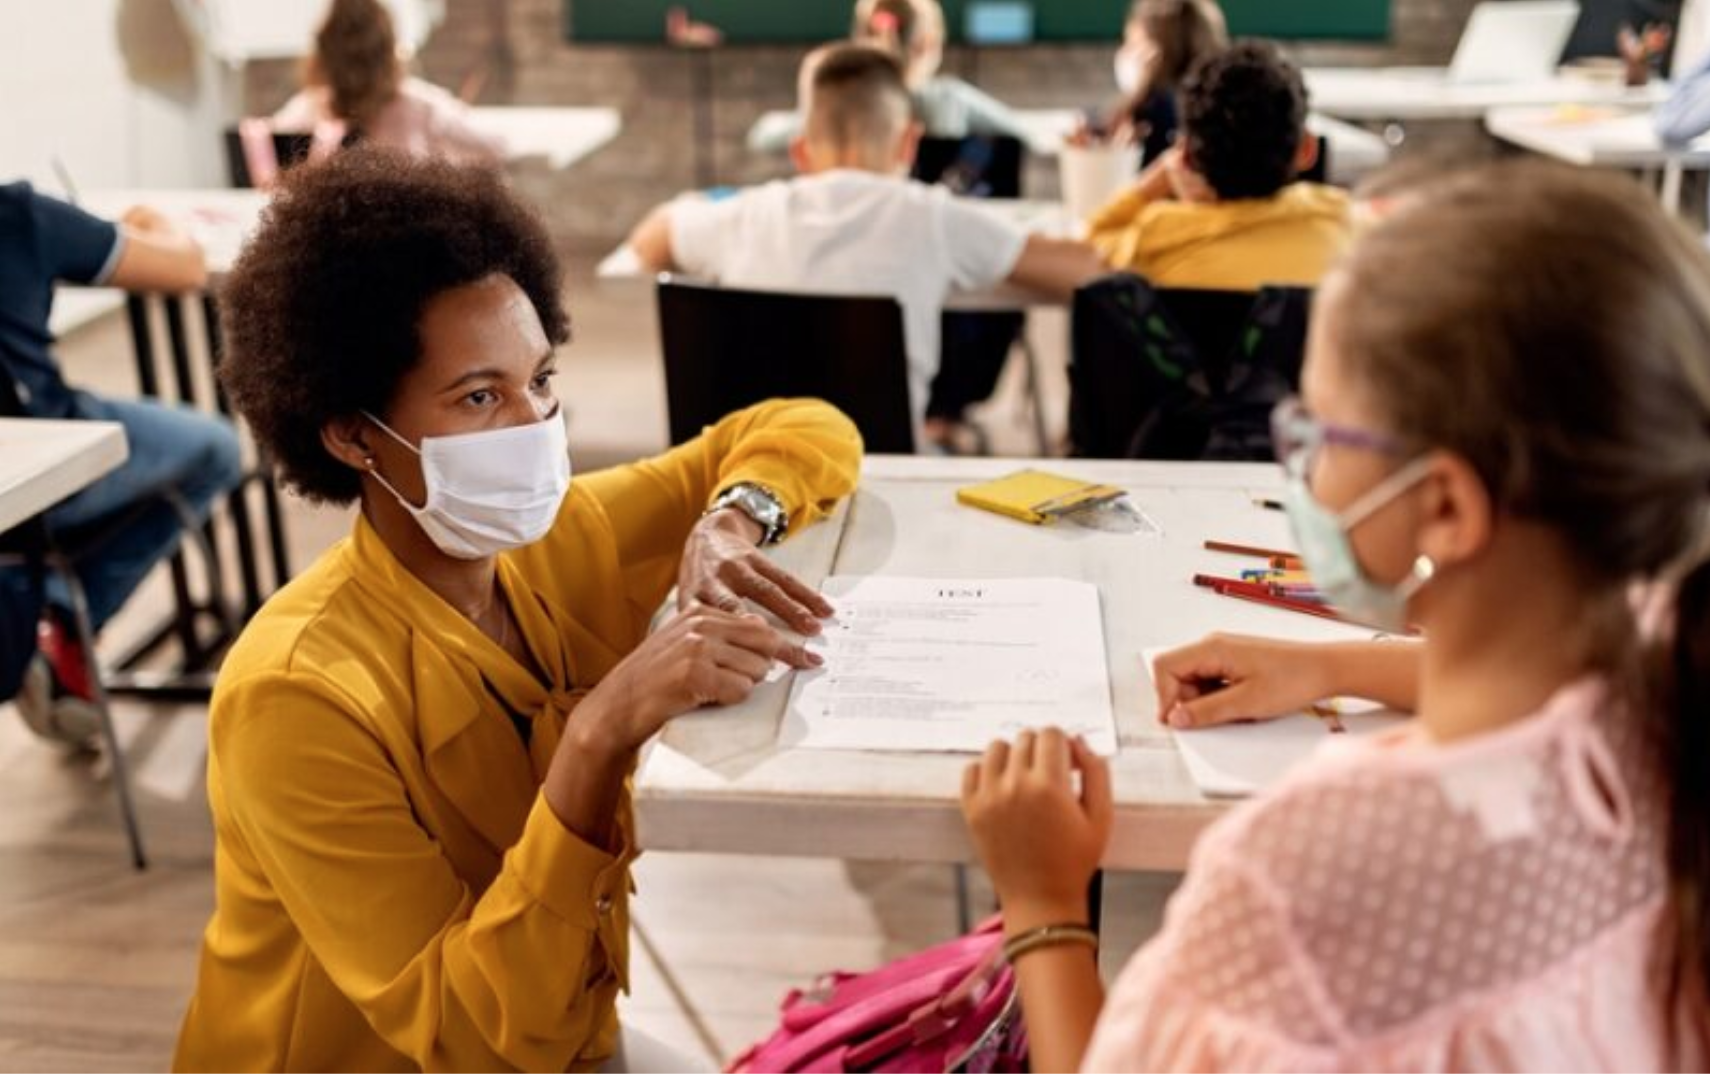 New York teacher helping student during COVID-19 pandemic